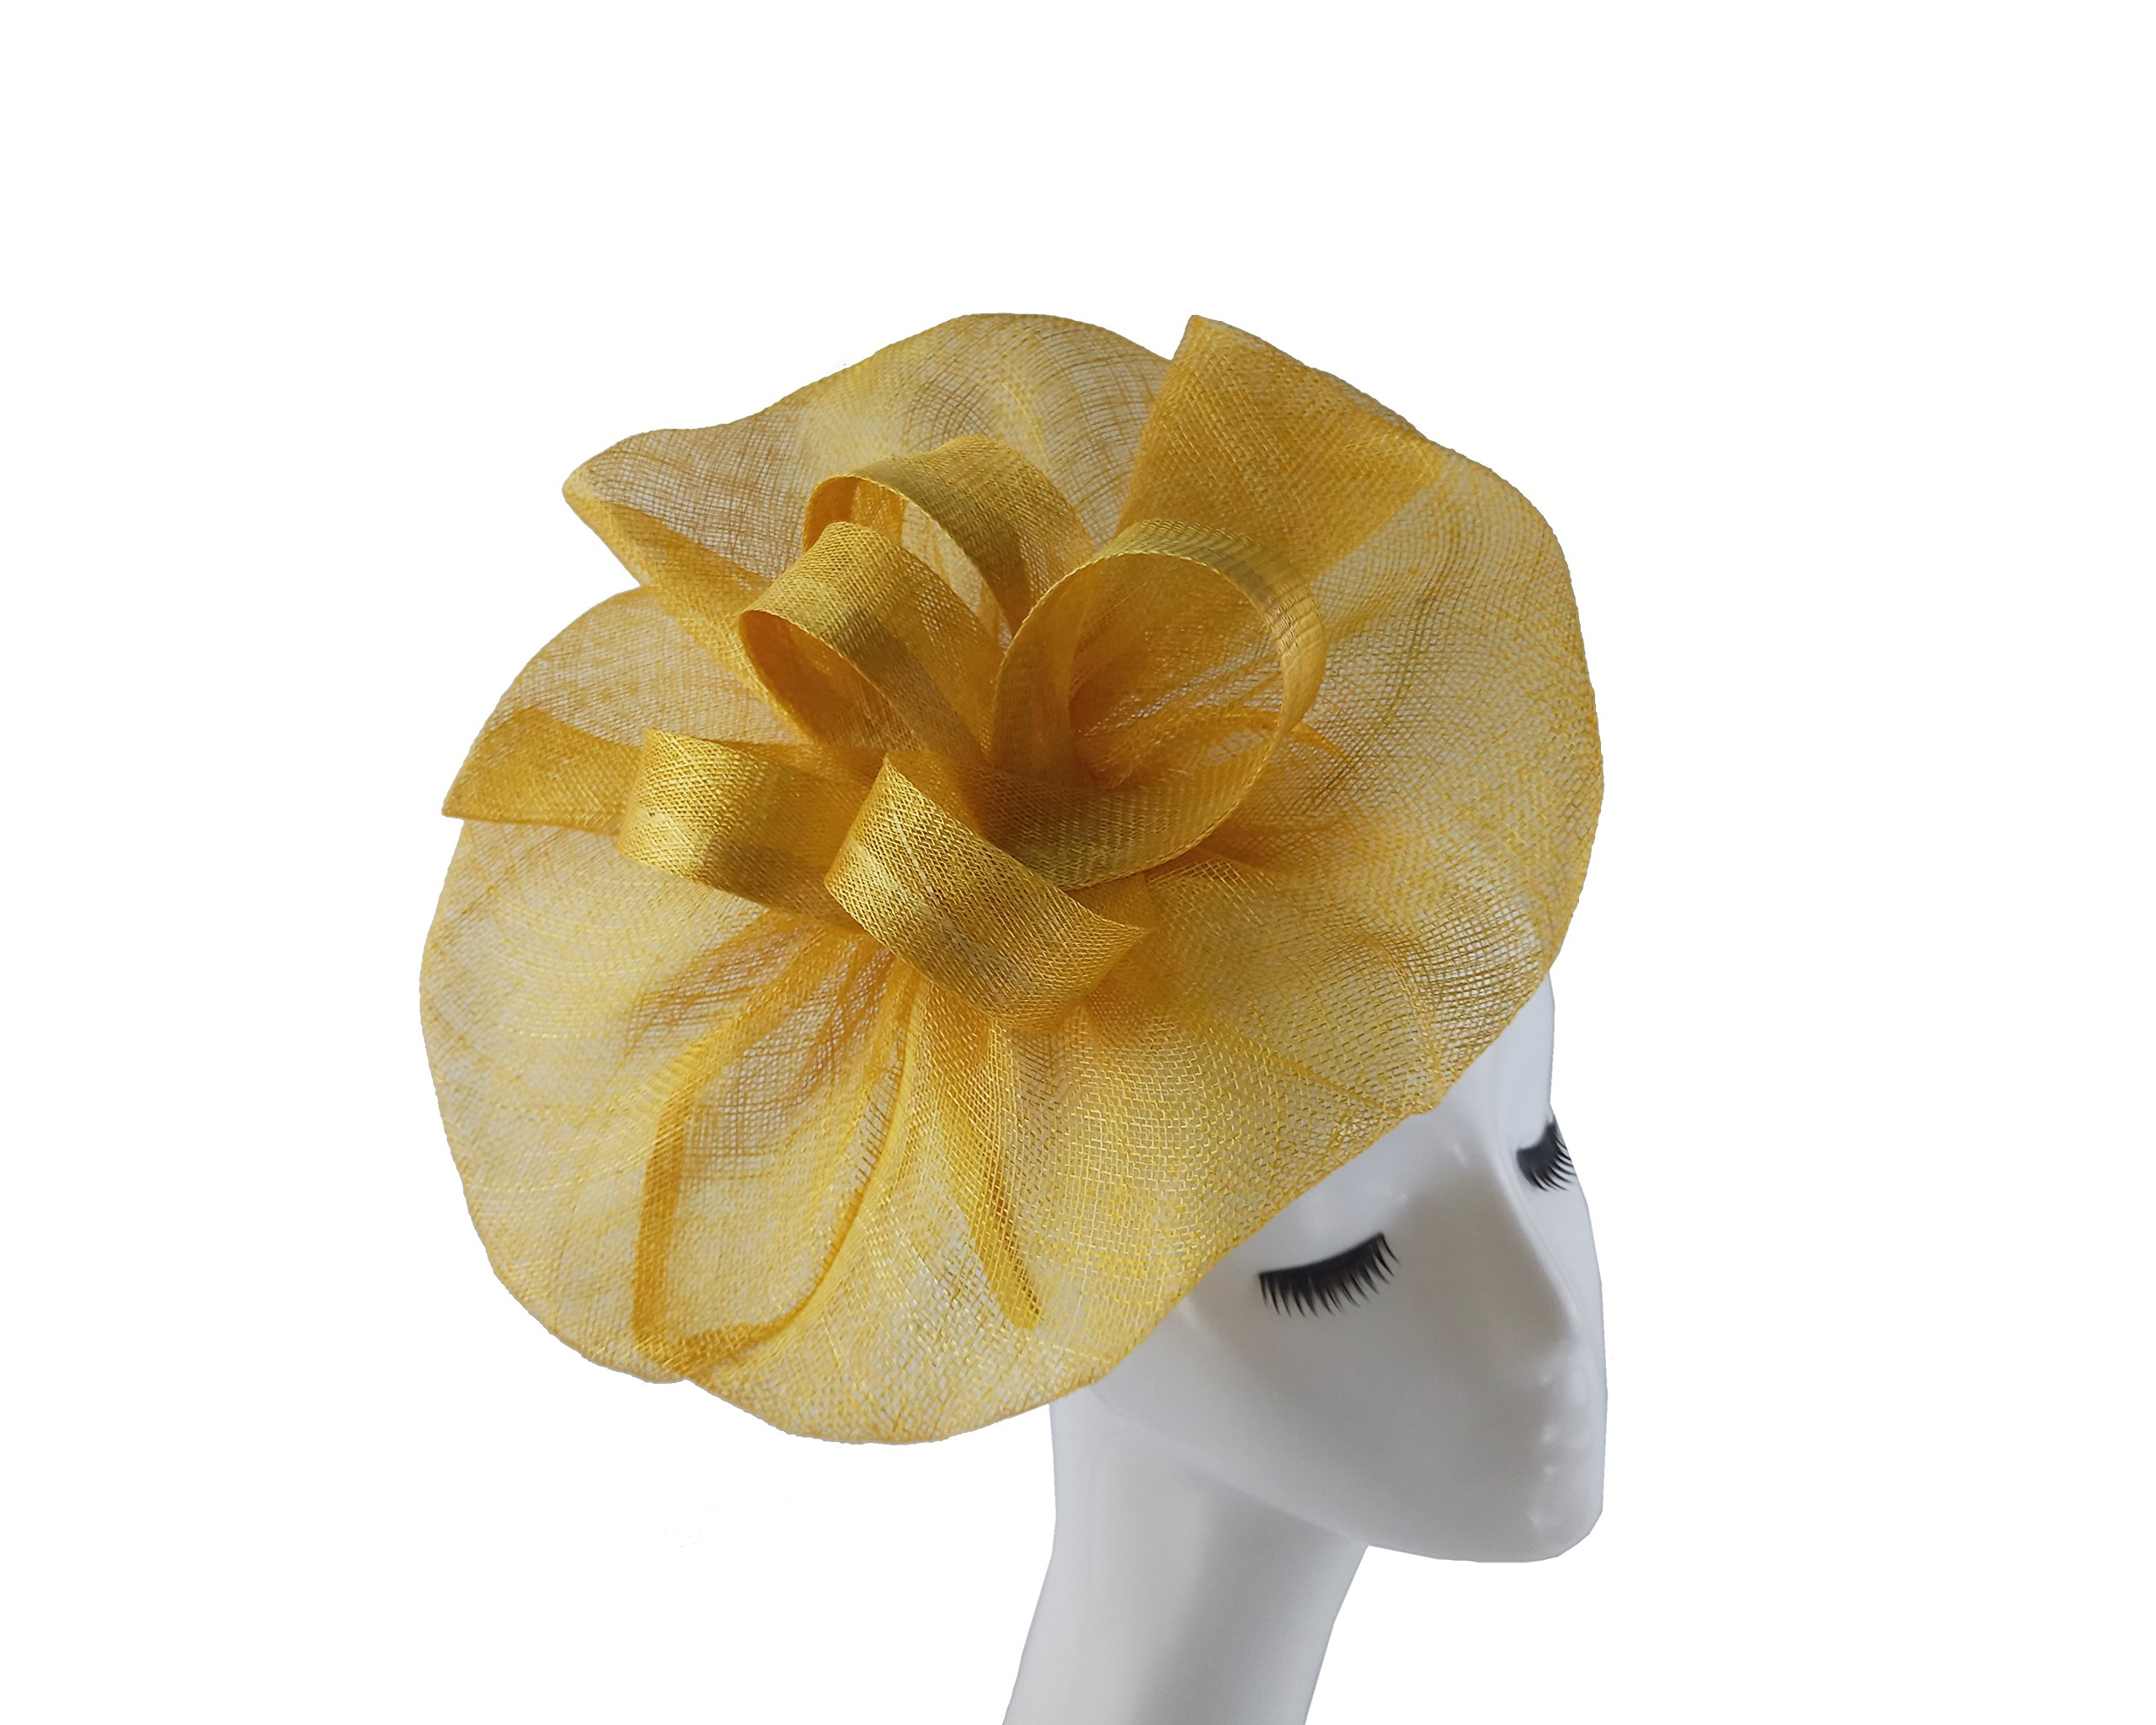 Women Sinamay Fascinator Headband Clip Head Piece for Tea Party Racing Debery Church Wedding Special Occasions (Golden Yellow)